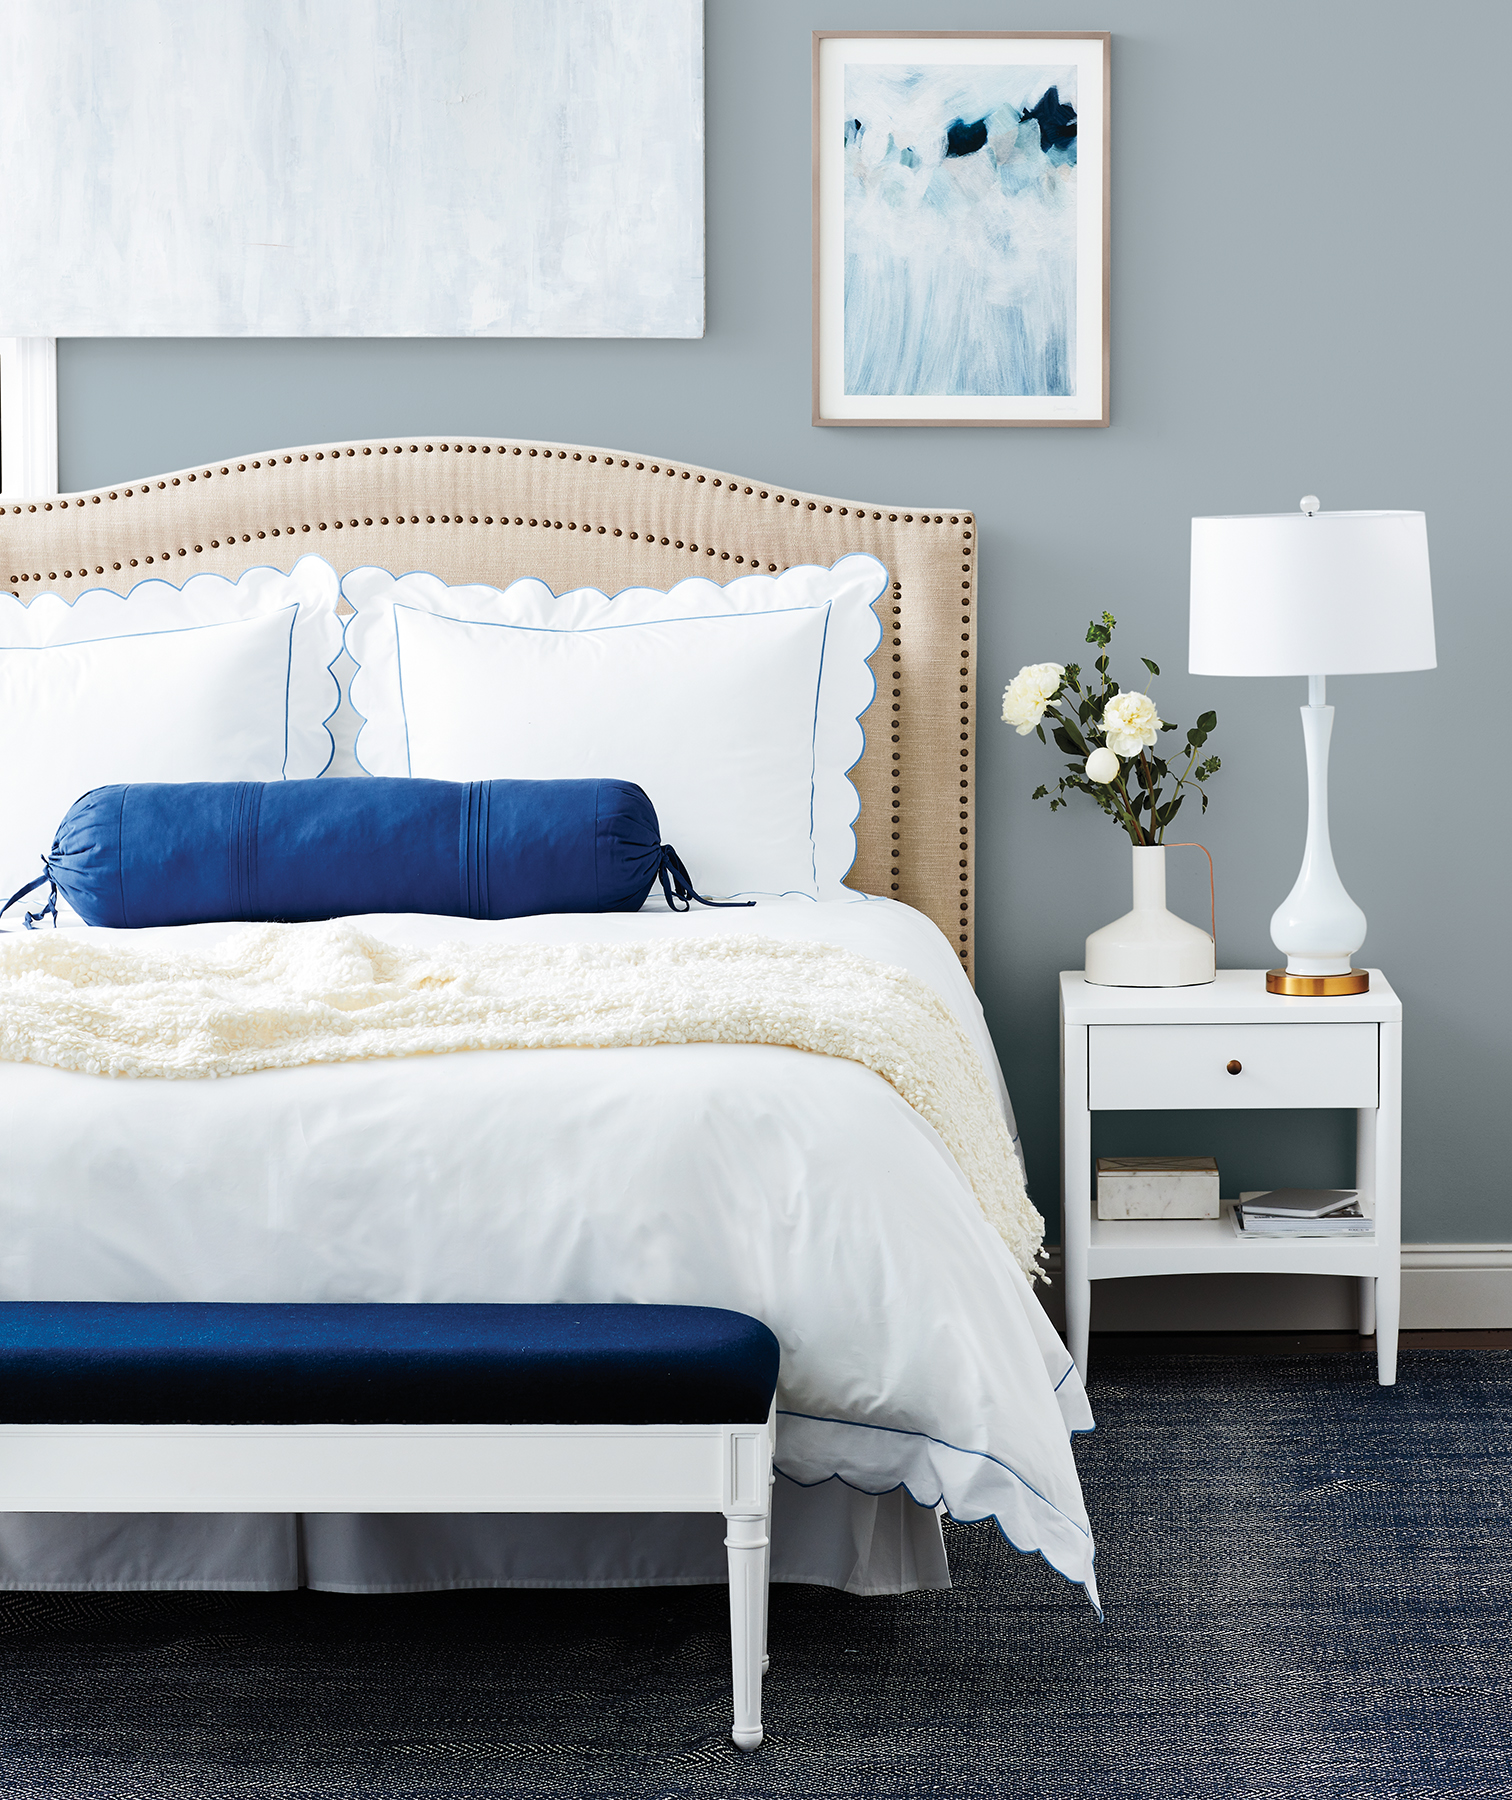 classic bedroom in grays blues whites - Bedroom